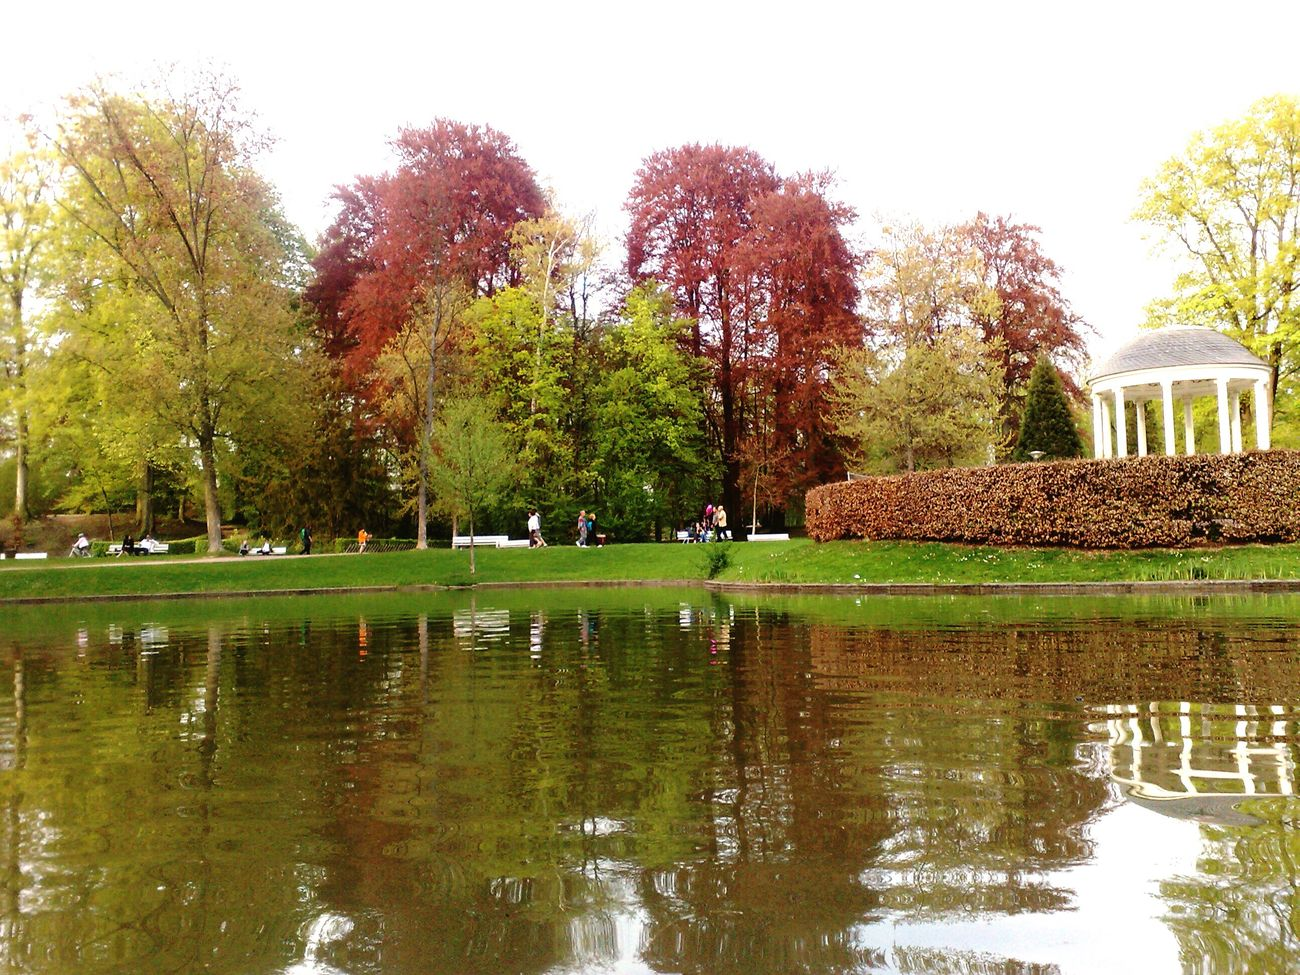 Beauty In Nature Trees Trees And Nature Trees And Water Trees And Bushes Reflection Green Color Outdoors Water Lake Strasbourg Beauty In Nature